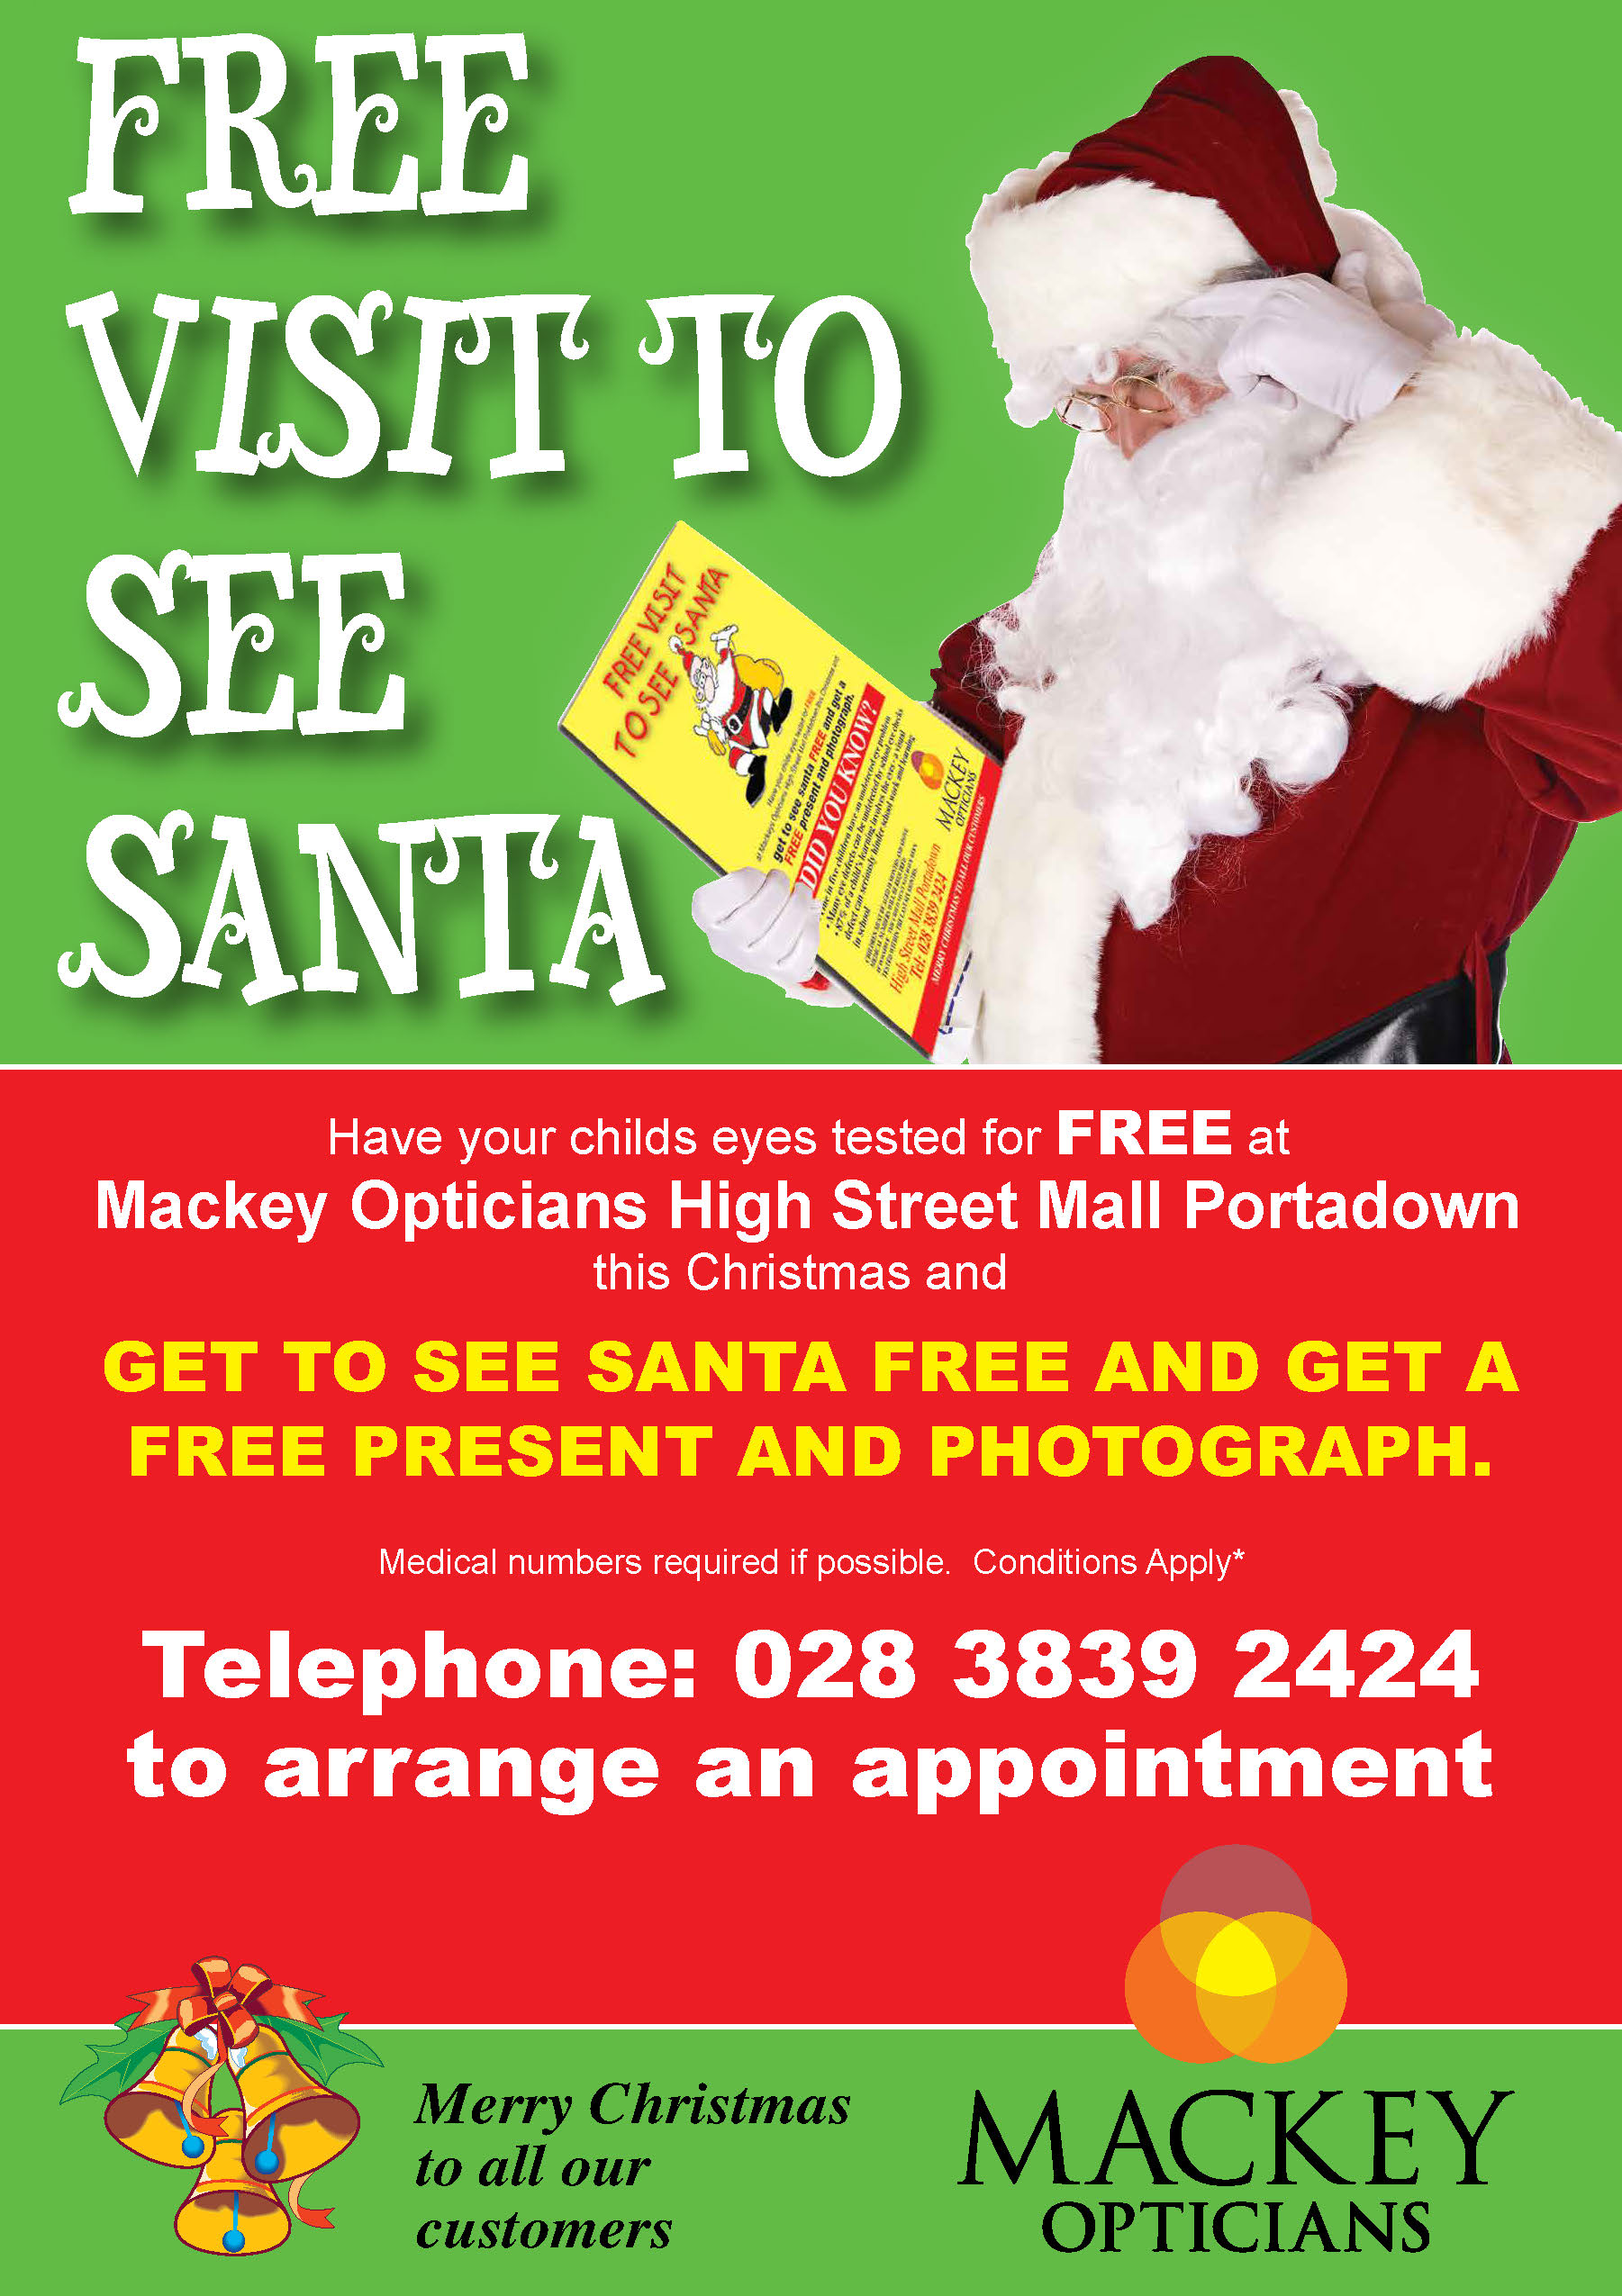 Free visit to see Santa with Mackey Opticians